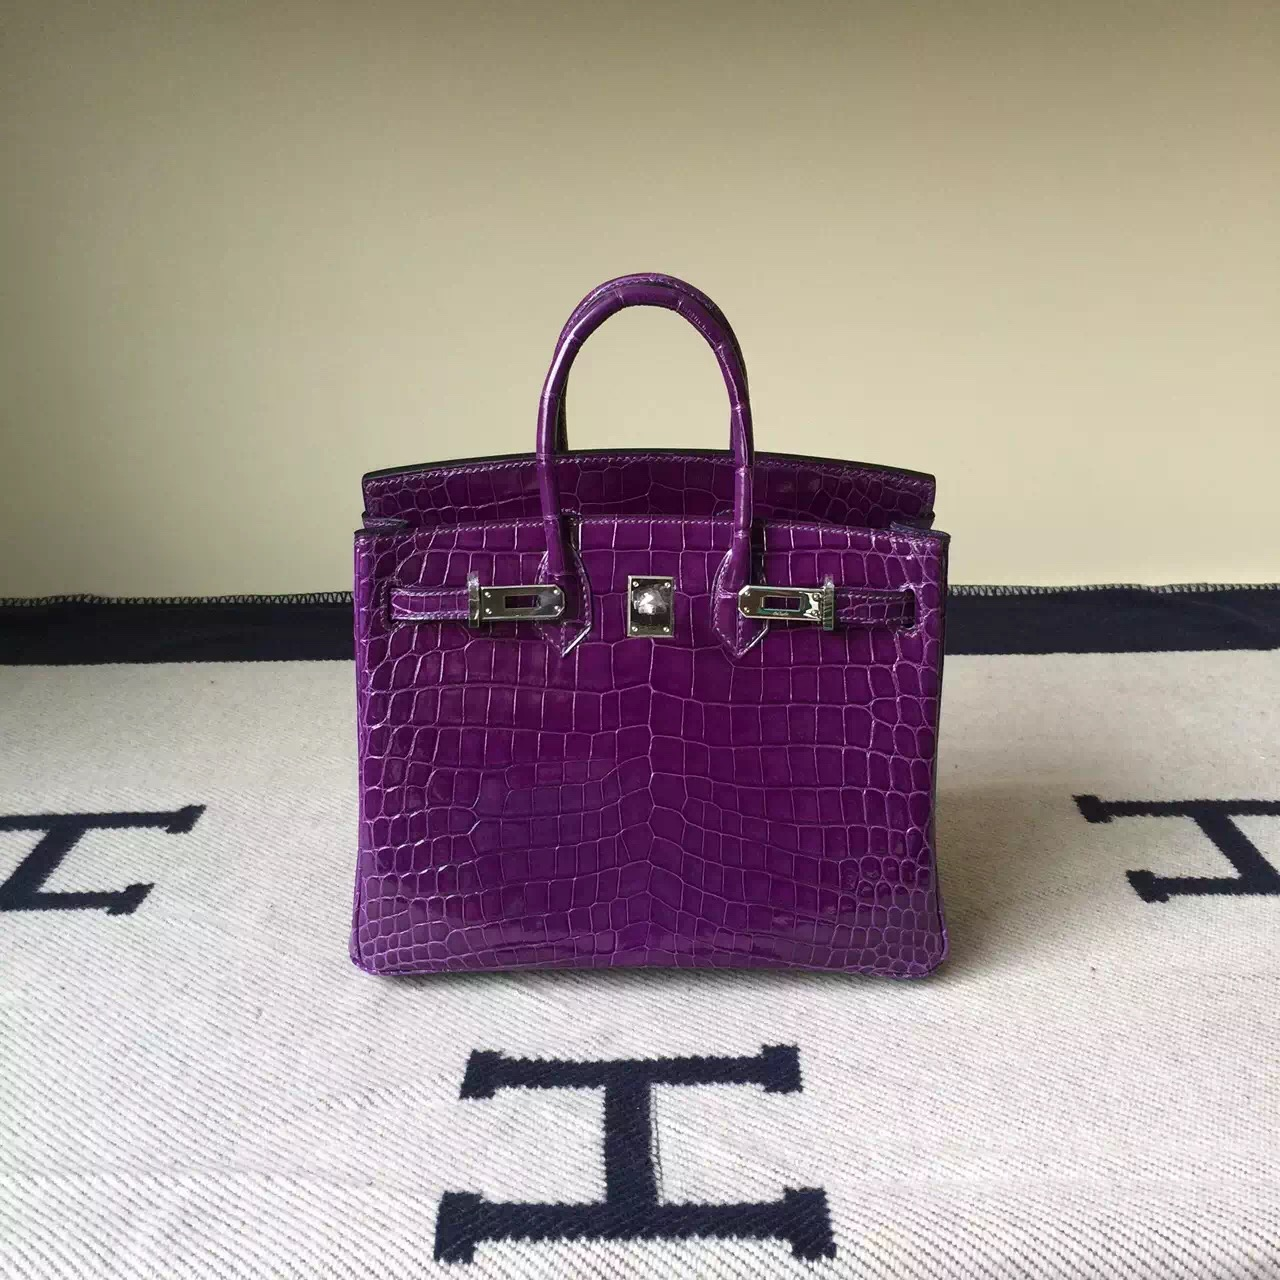 On Sale Hermes Grape Purple Crocodile Shiny Leather Birkin Bag 25cm